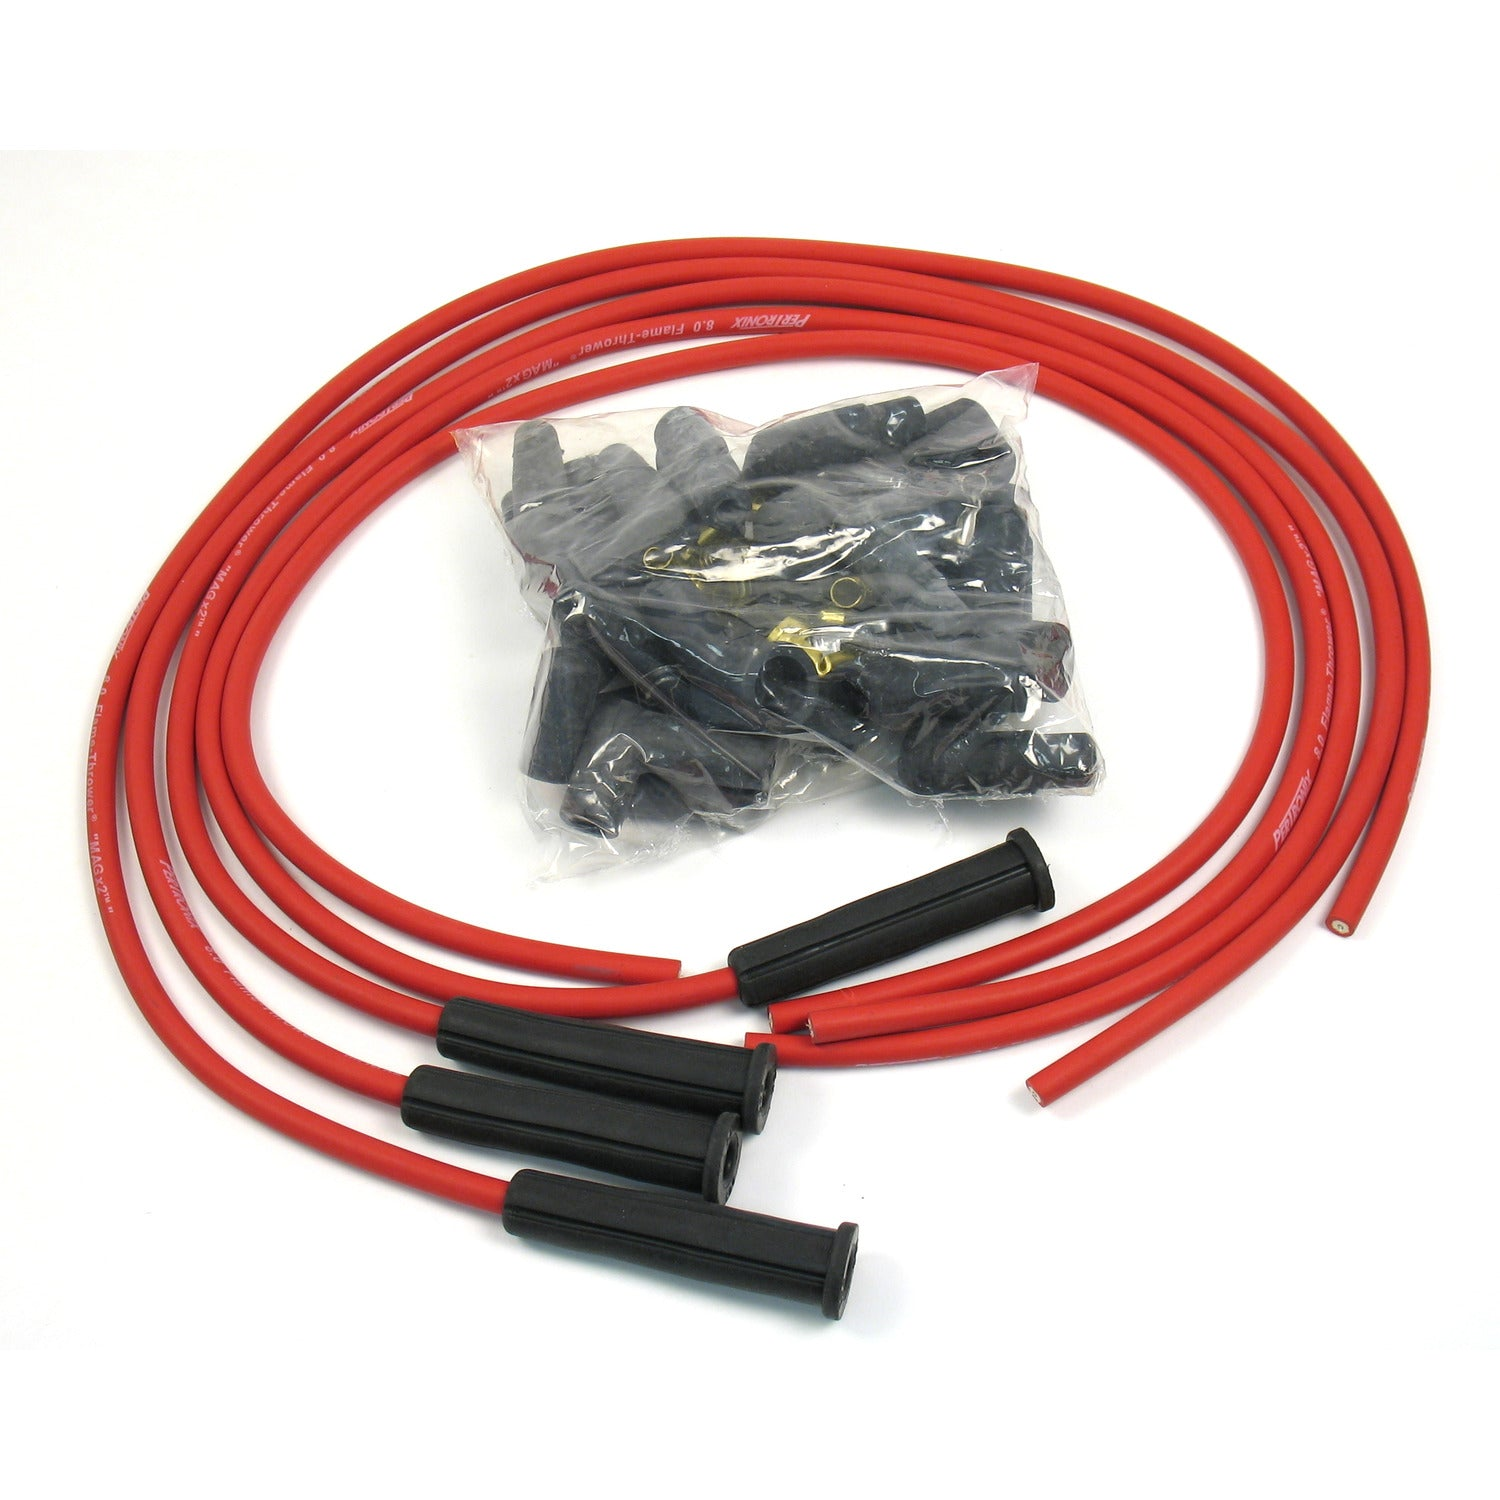 PerTronix 804480 Flame-Thrower Spark Plug Wires 4 cyl 8mm Universal 180 Degree Red